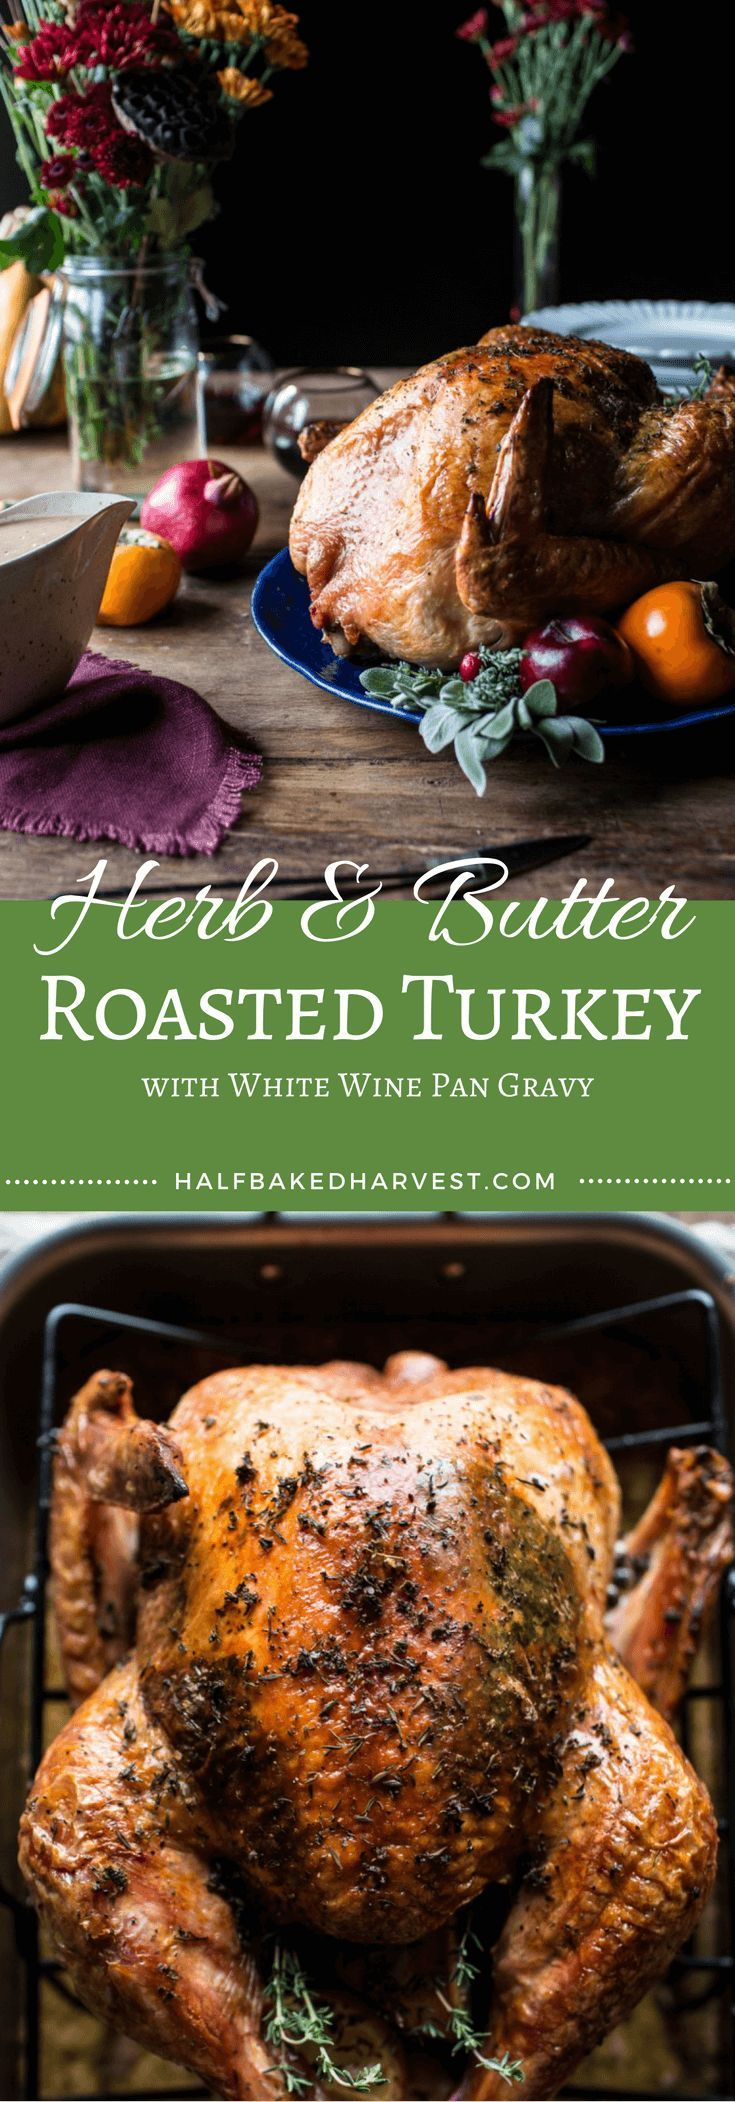 Herb and Butter Roasted Turkey with White Wine Pan Gravy   http://halfbakedharvest.com /hbharvest/